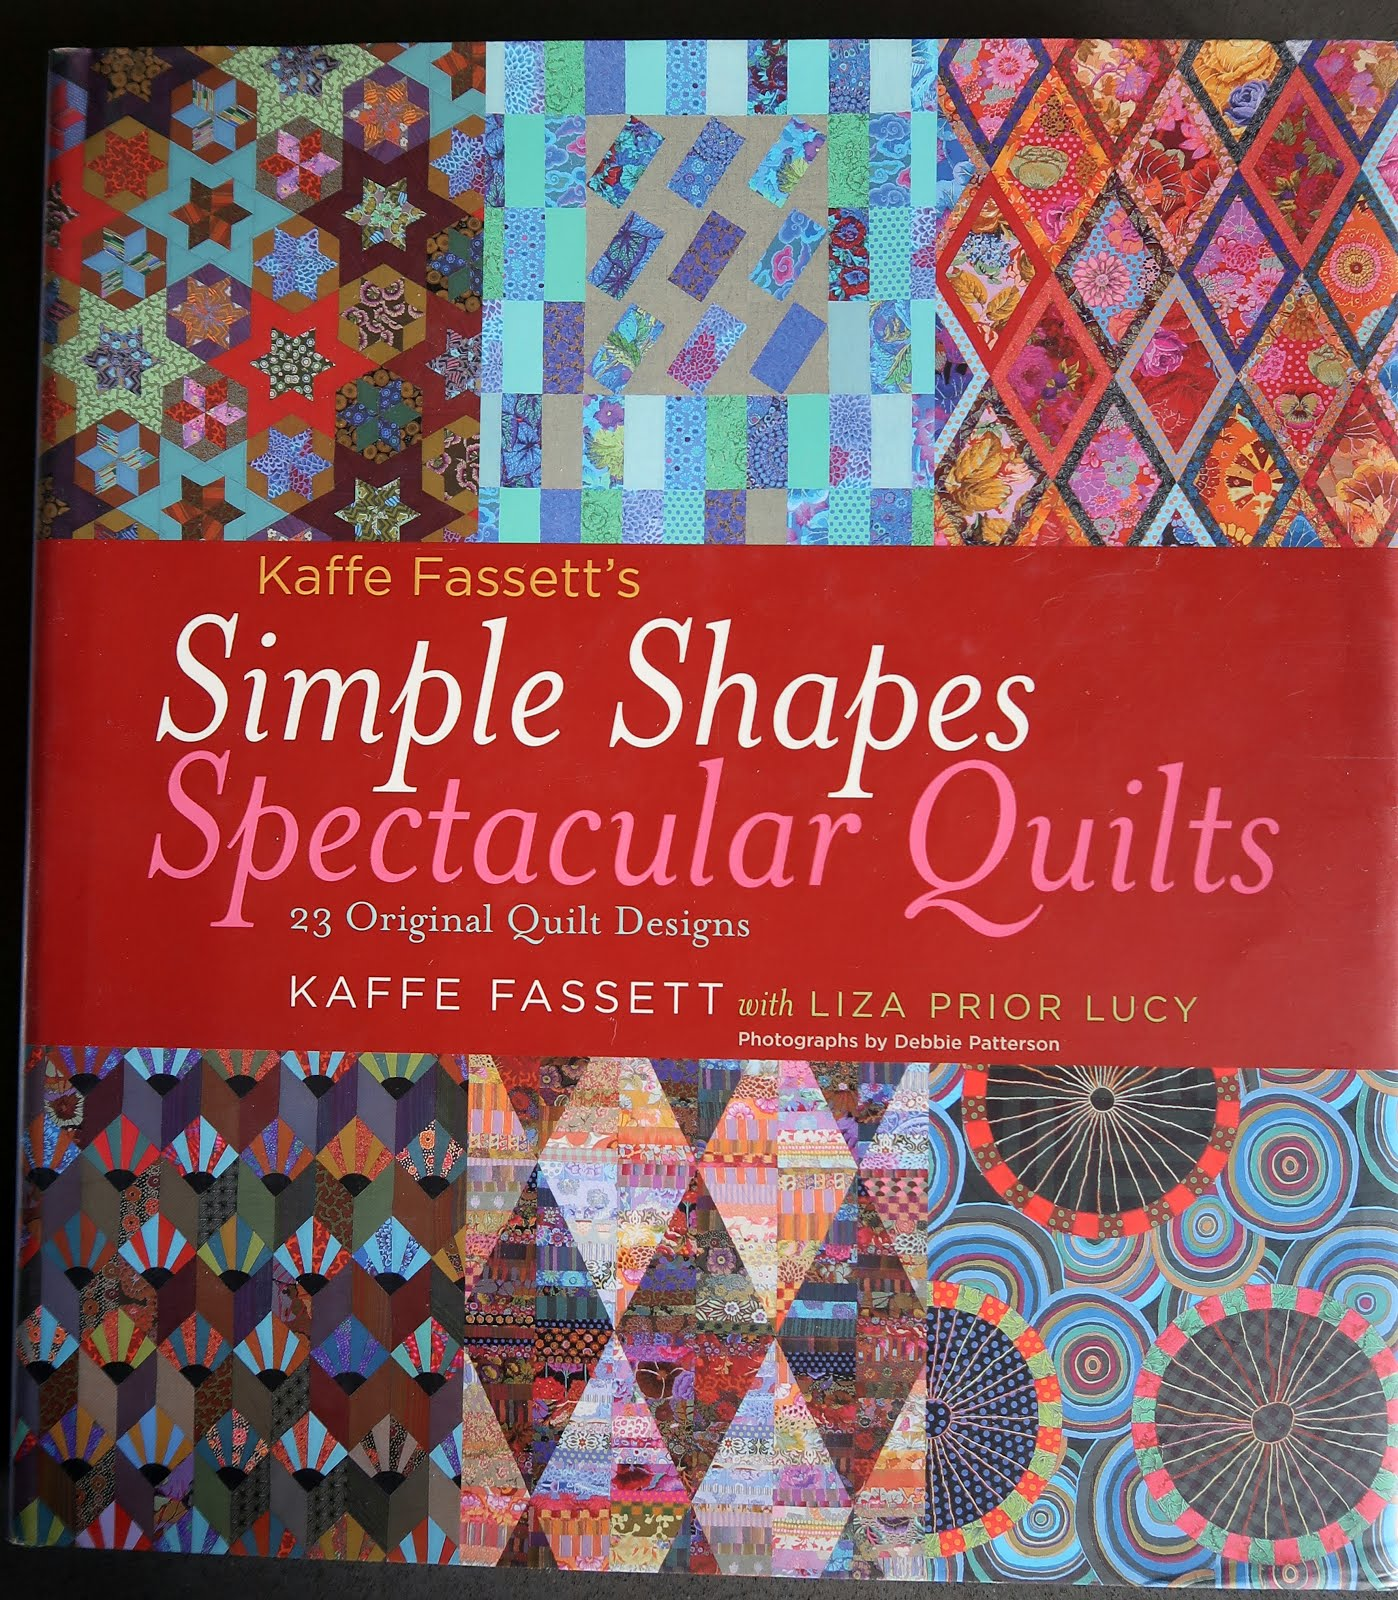 Kaffe Fassett: Simple Shapes, Spectacular quilts (click!)